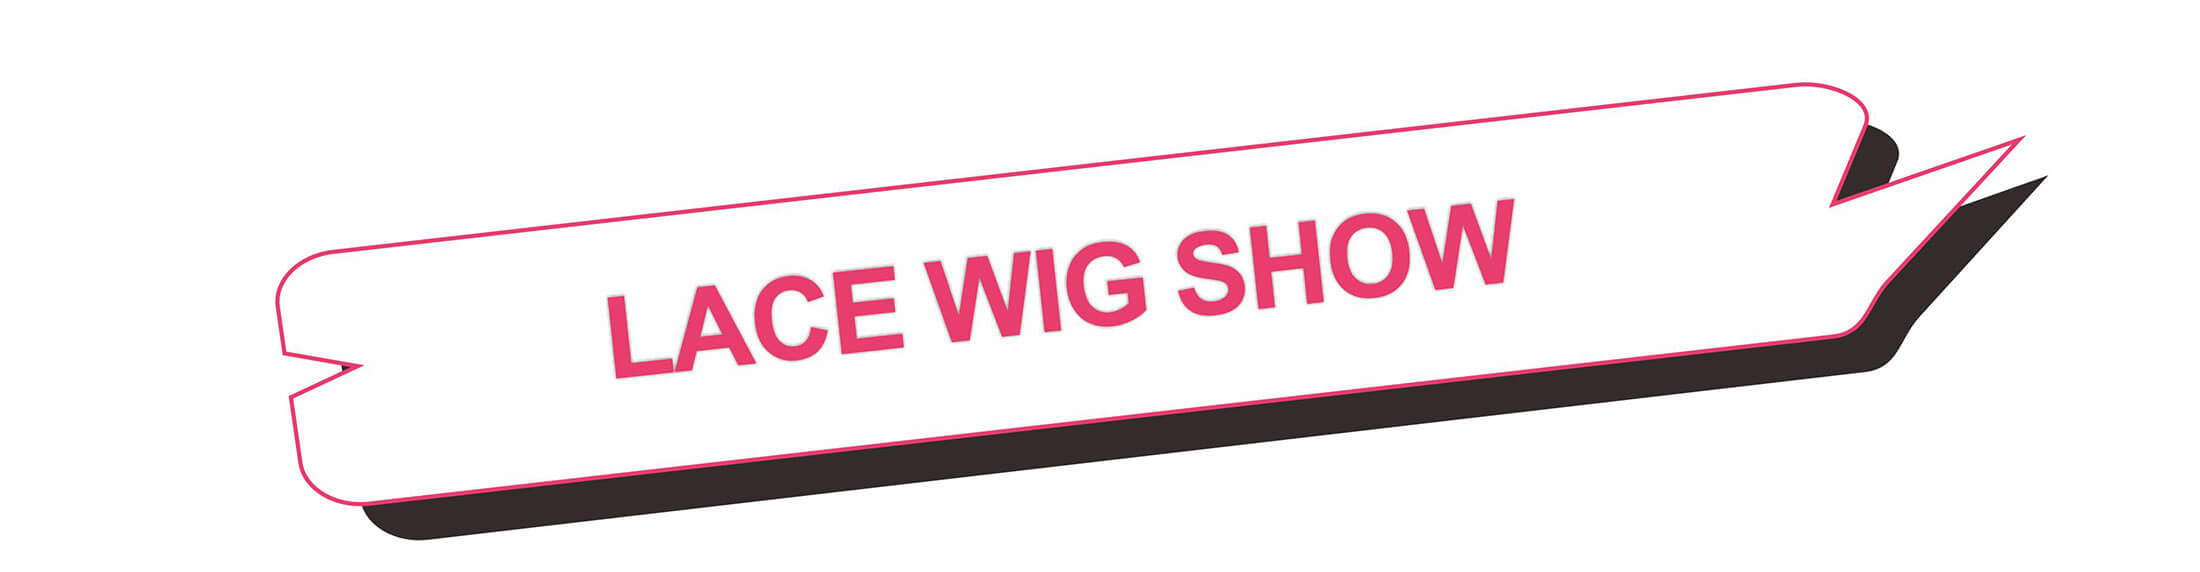 lace wig show